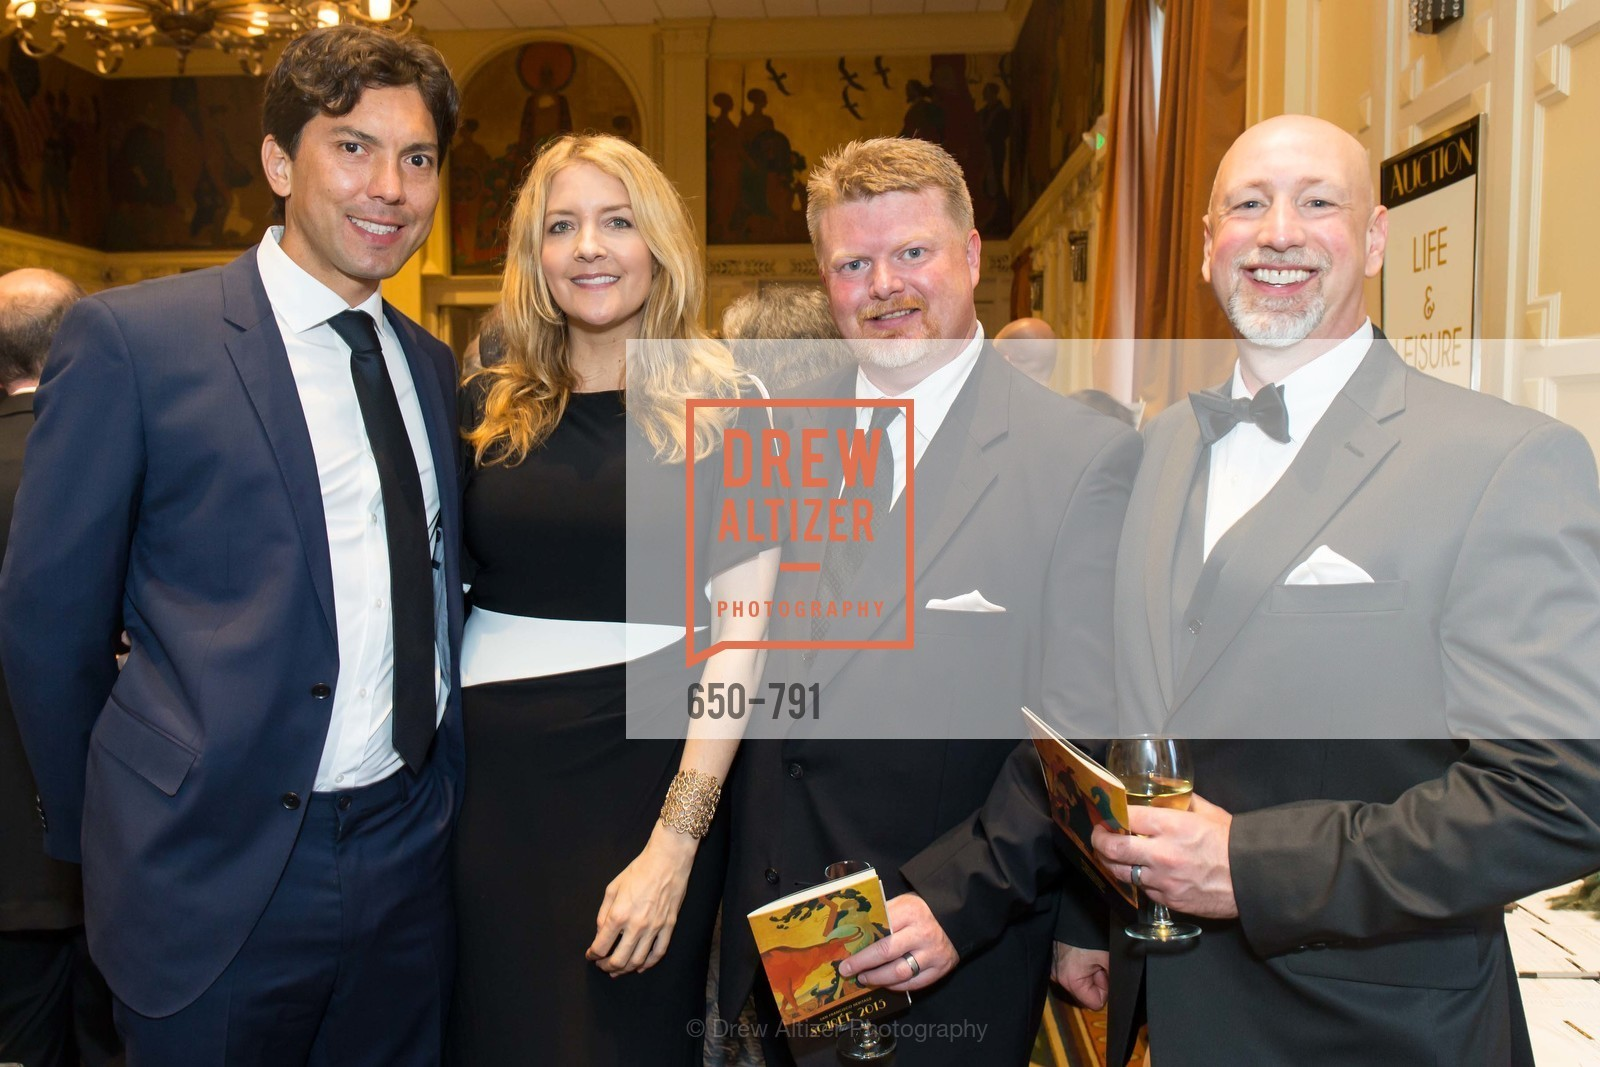 Terry Kelley, Jill Helffenstein, Jesse Cowdrey, James Landman, SAN FRANCISCO HERITAGE Soiree 2015, US, April 19th, 2015,Drew Altizer, Drew Altizer Photography, full-service agency, private events, San Francisco photographer, photographer california